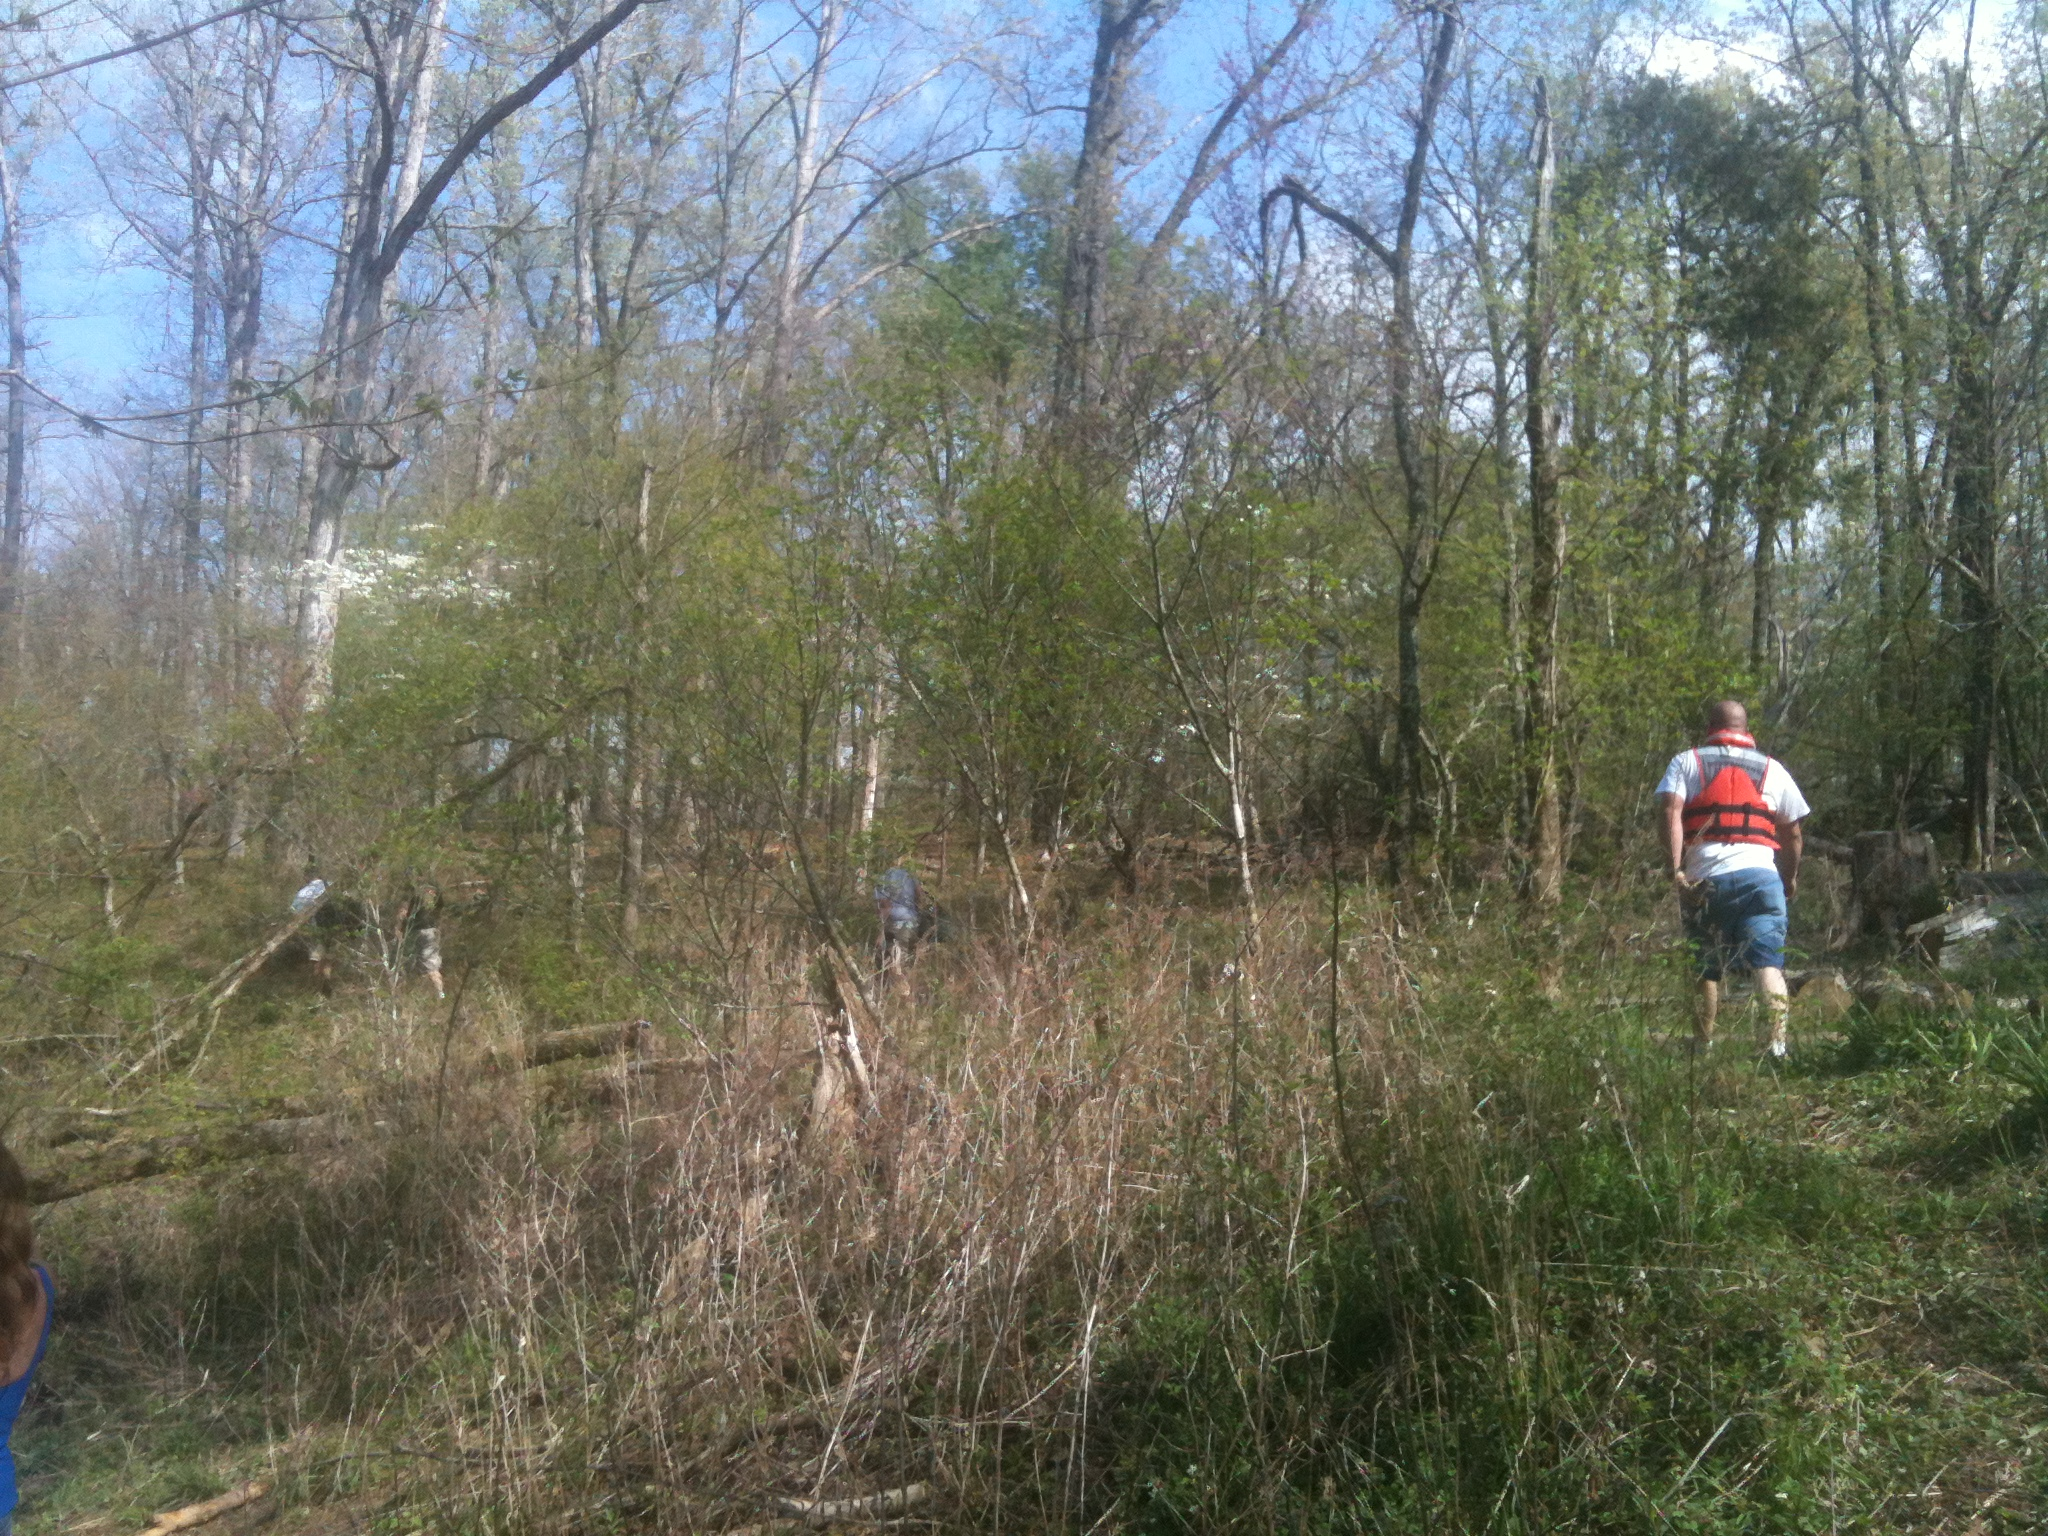 Crews search for Caleb